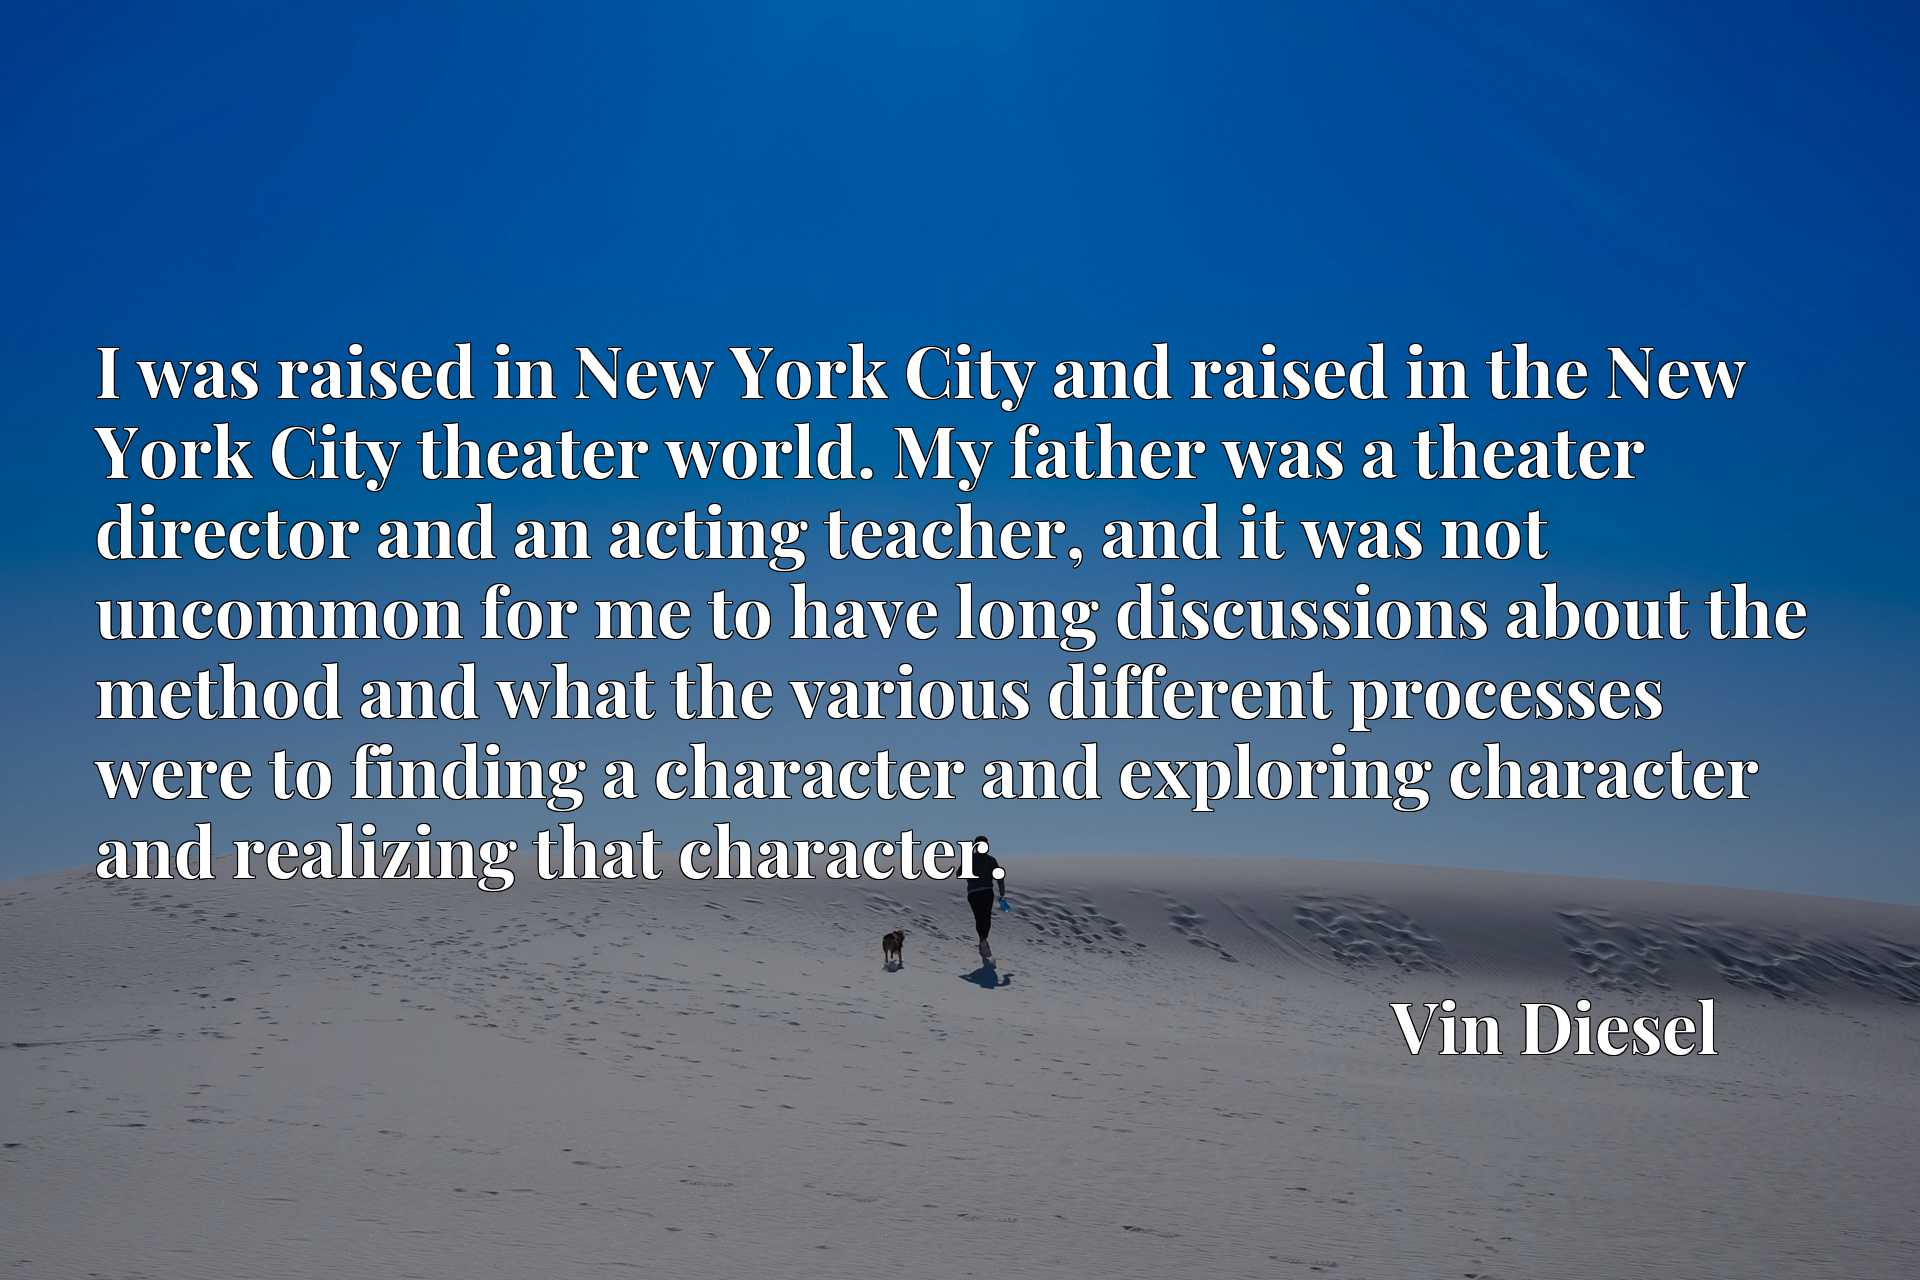 Quote Picture :I was raised in New York City and raised in the New York City theater world. My father was a theater director and an acting teacher, and it was not uncommon for me to have long discussions about the method and what the various different processes were to finding a character and exploring character and realizing that character.